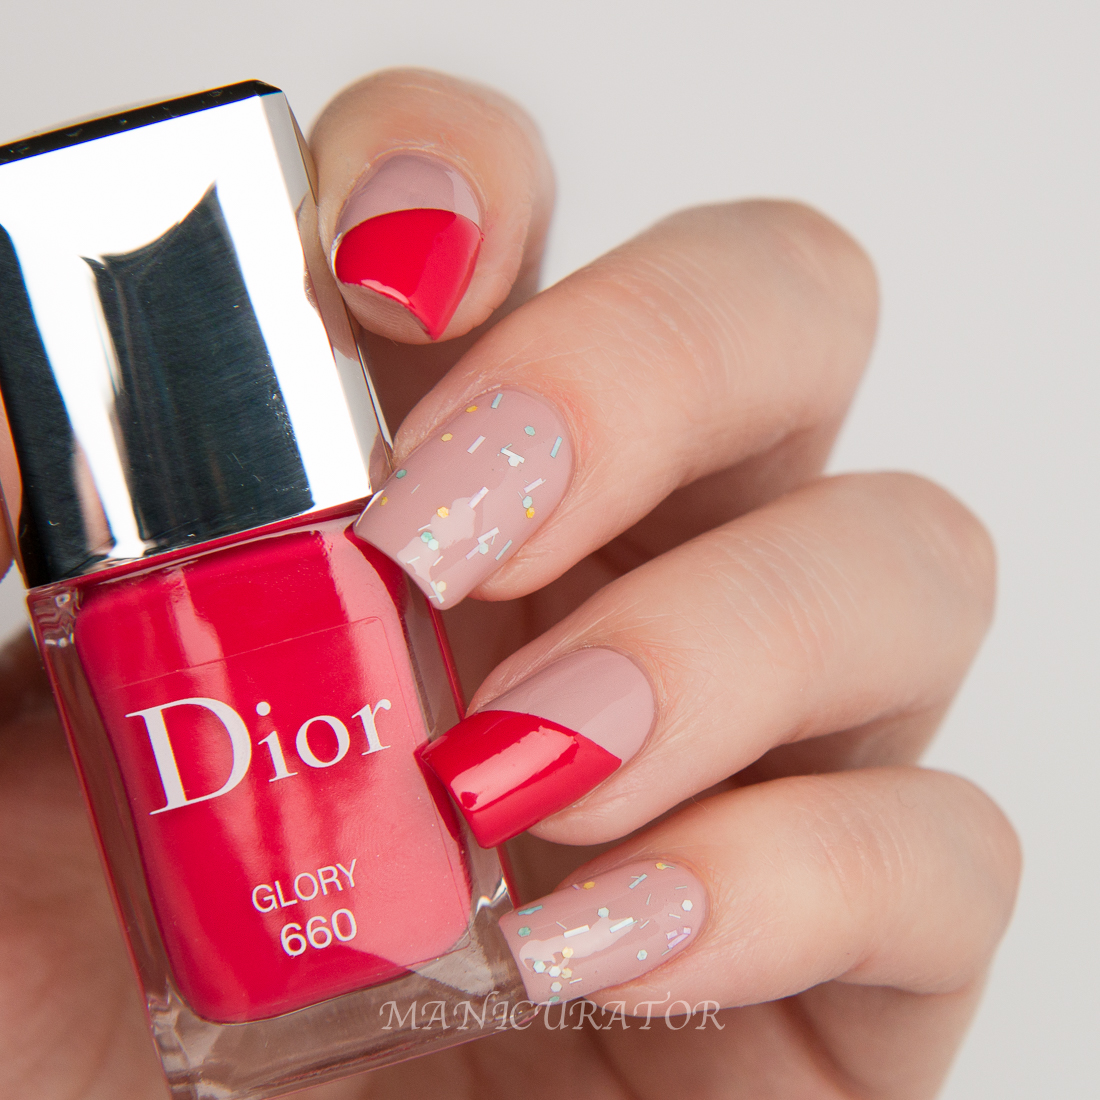 Dior-Kingdom-Colors-Vernis-Lady-Glory-Eclosion-nail-art-swatch